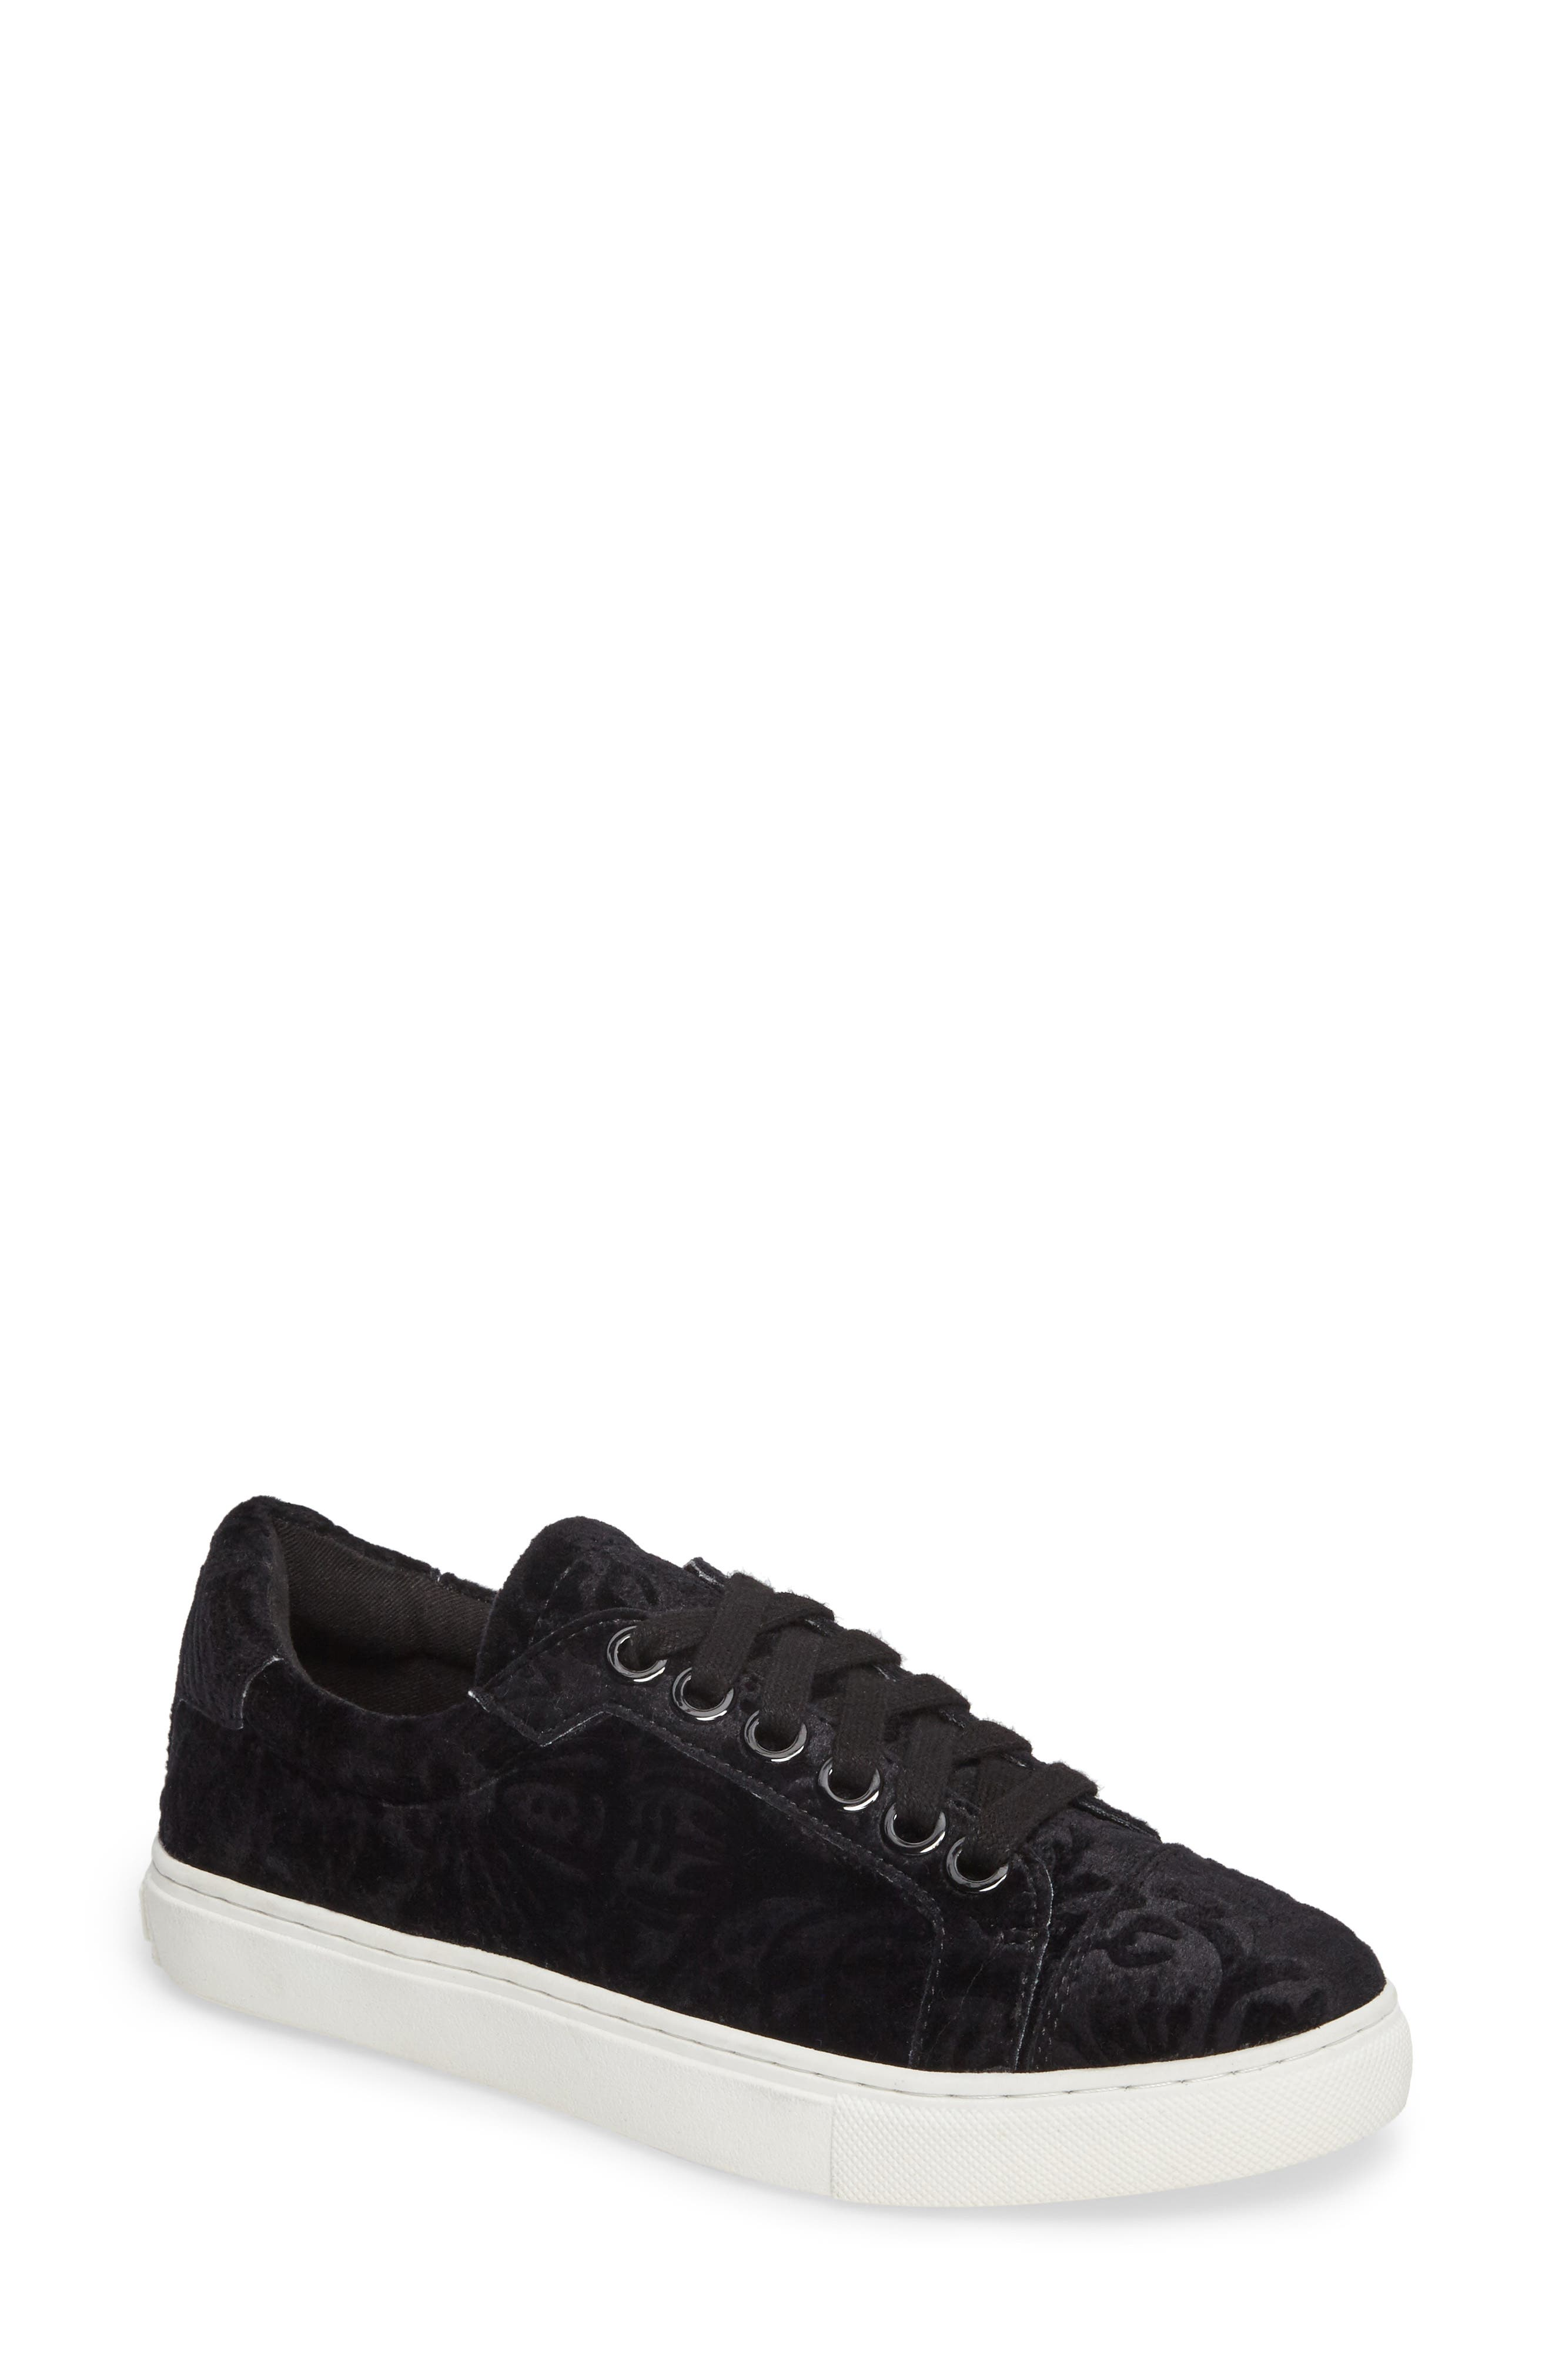 Bleecker Too Sneaker,                         Main,                         color, Black Floral Velvet